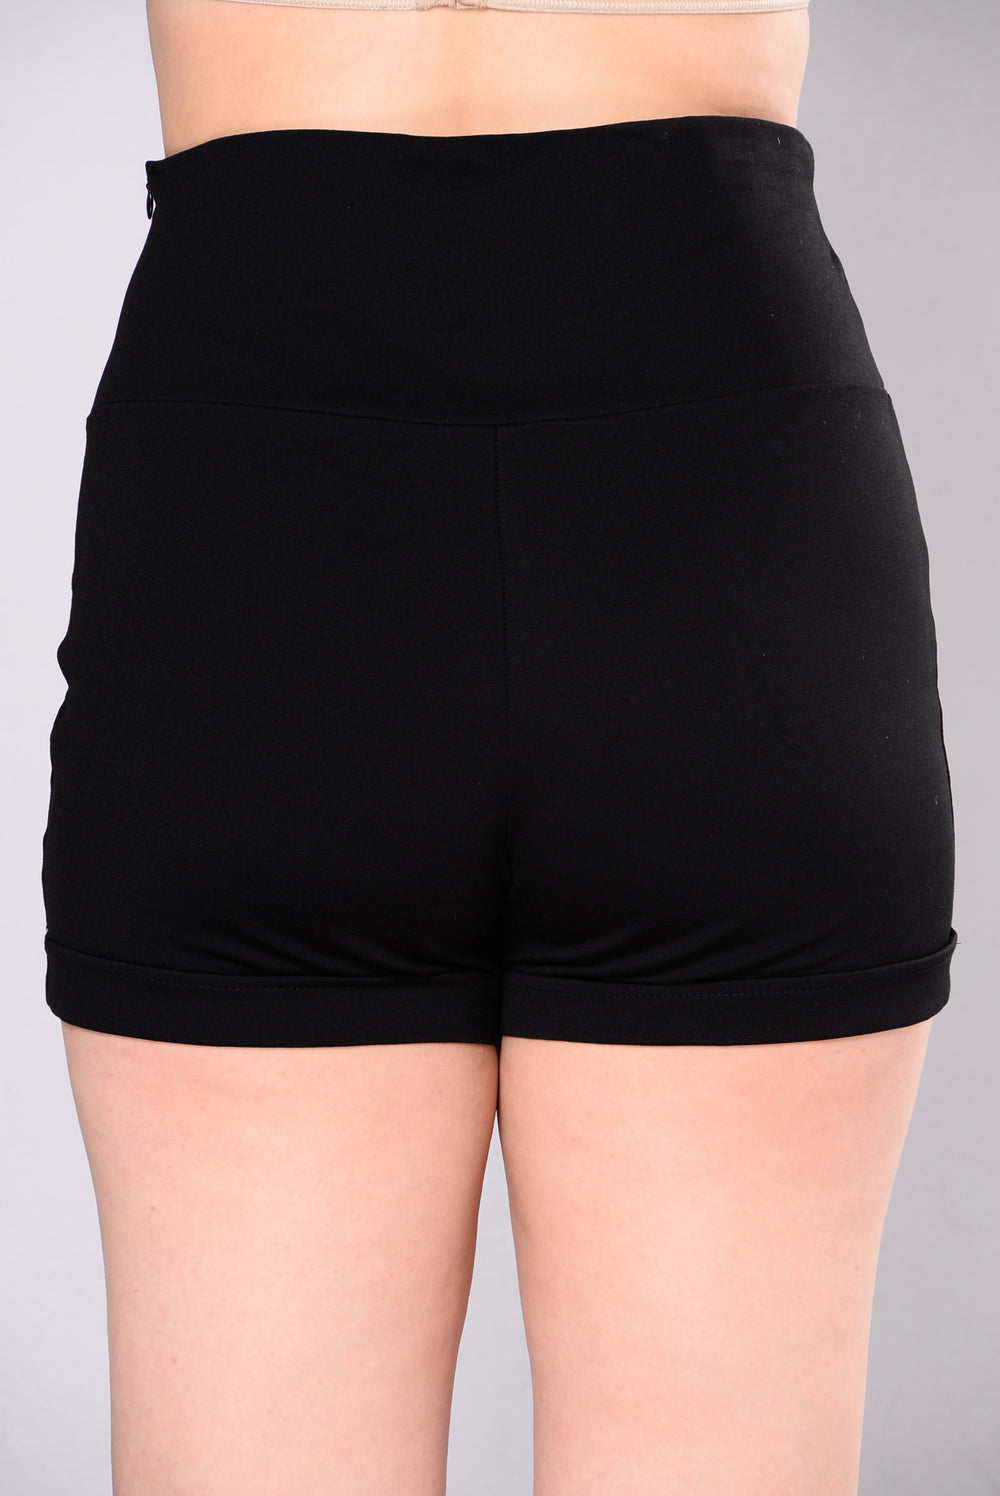 You Got This Shorts - Black